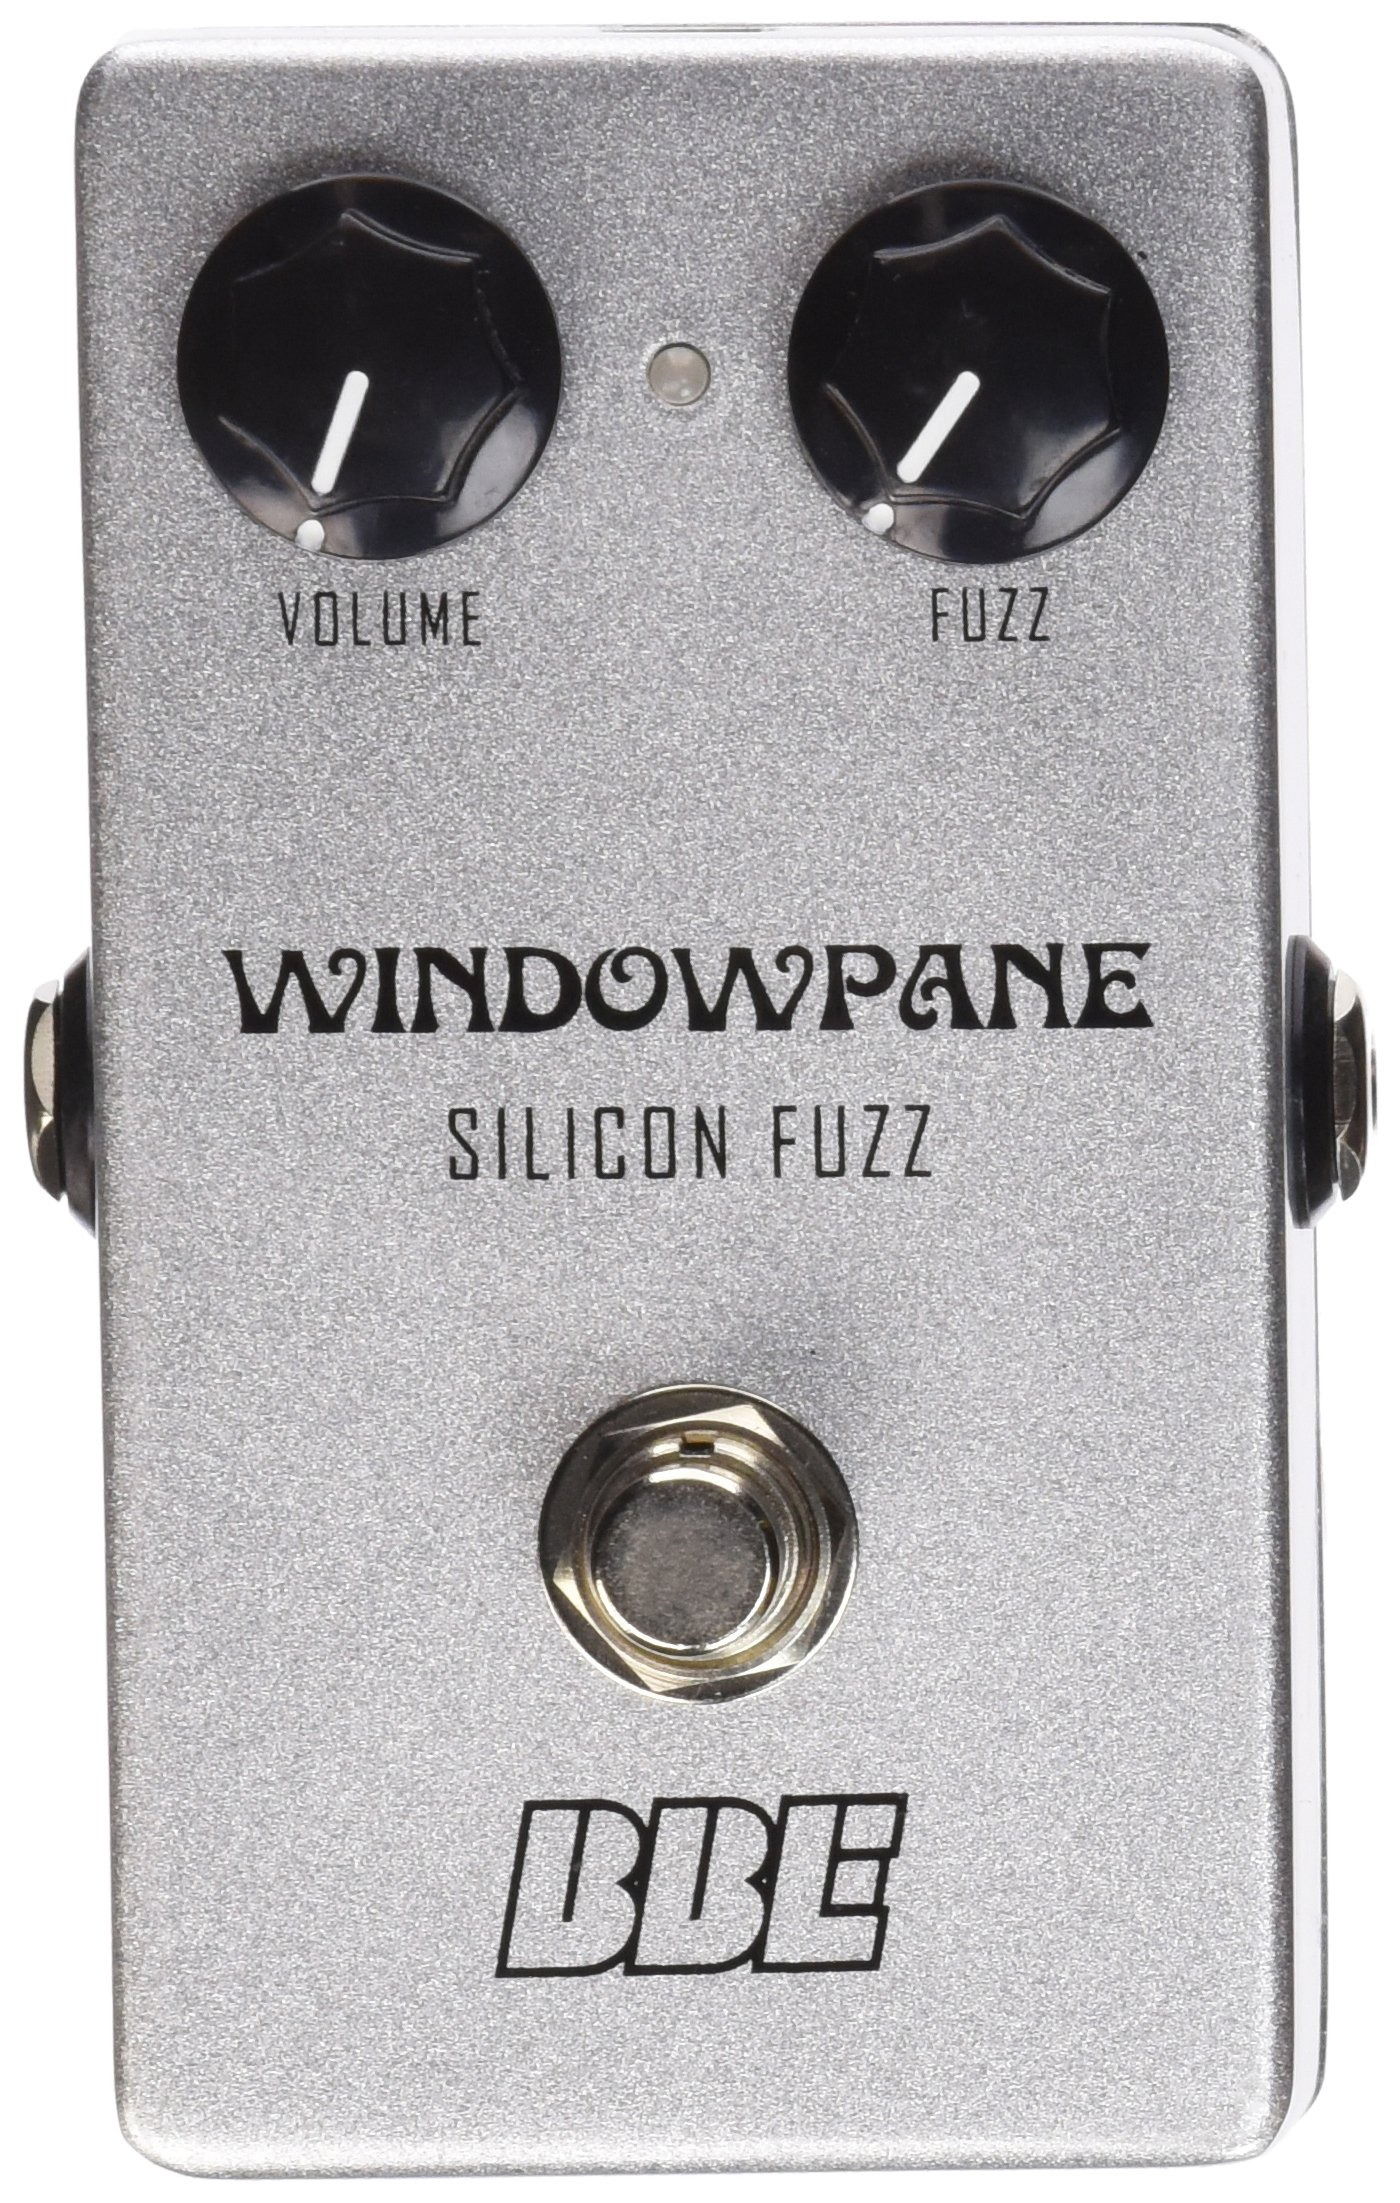 BBE Windowpane Silicon Fuz by BBE